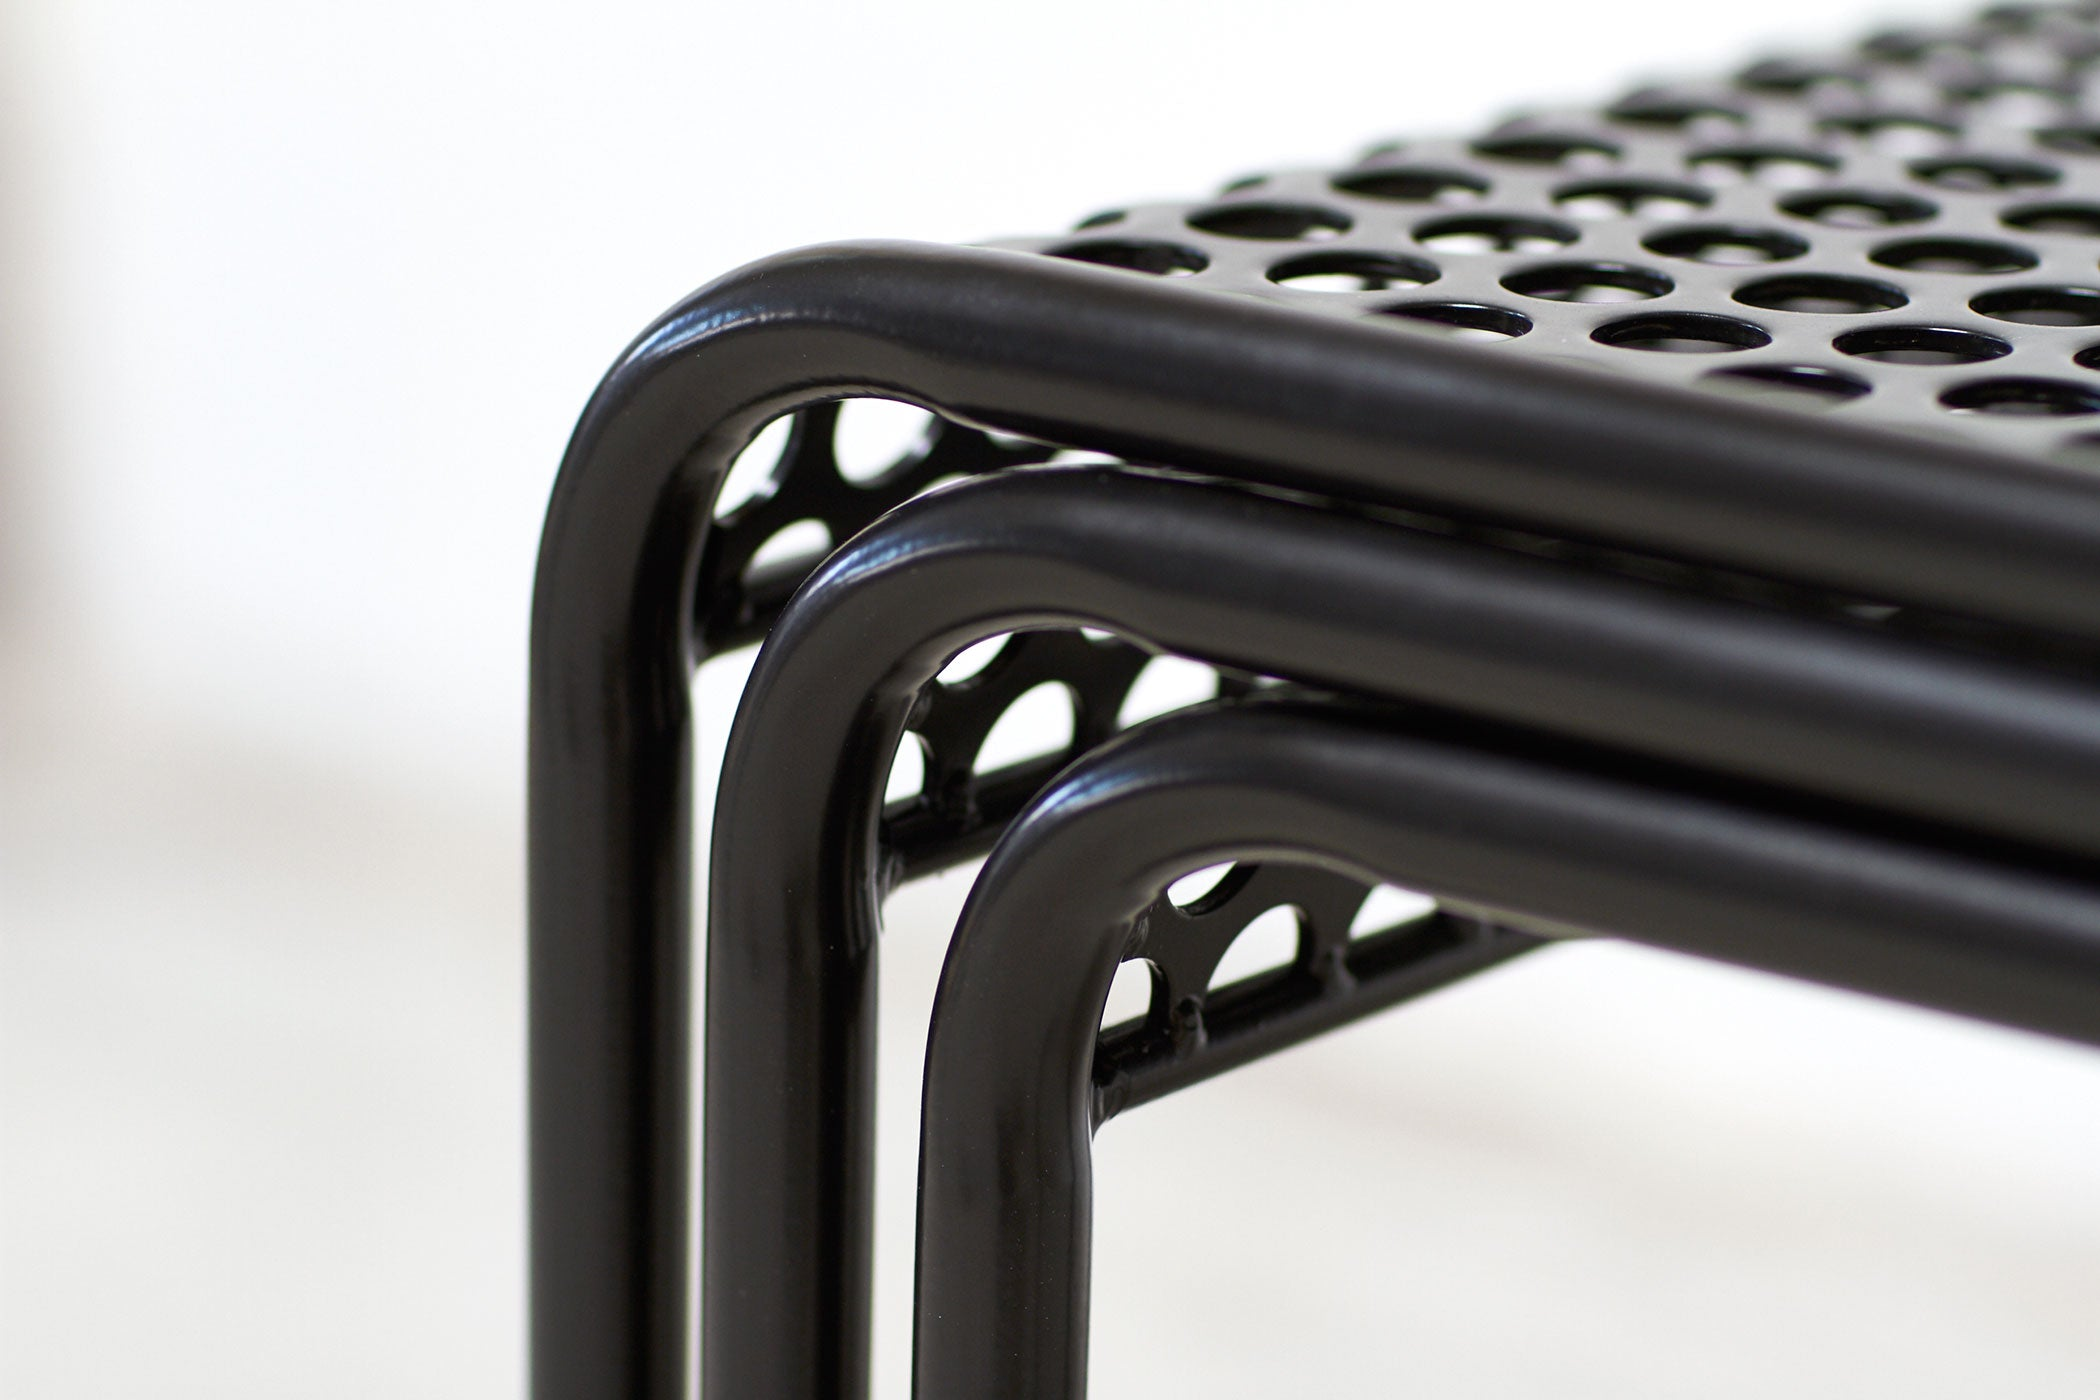 RAD Furniture's Perforated Dining Chair - seat  detail